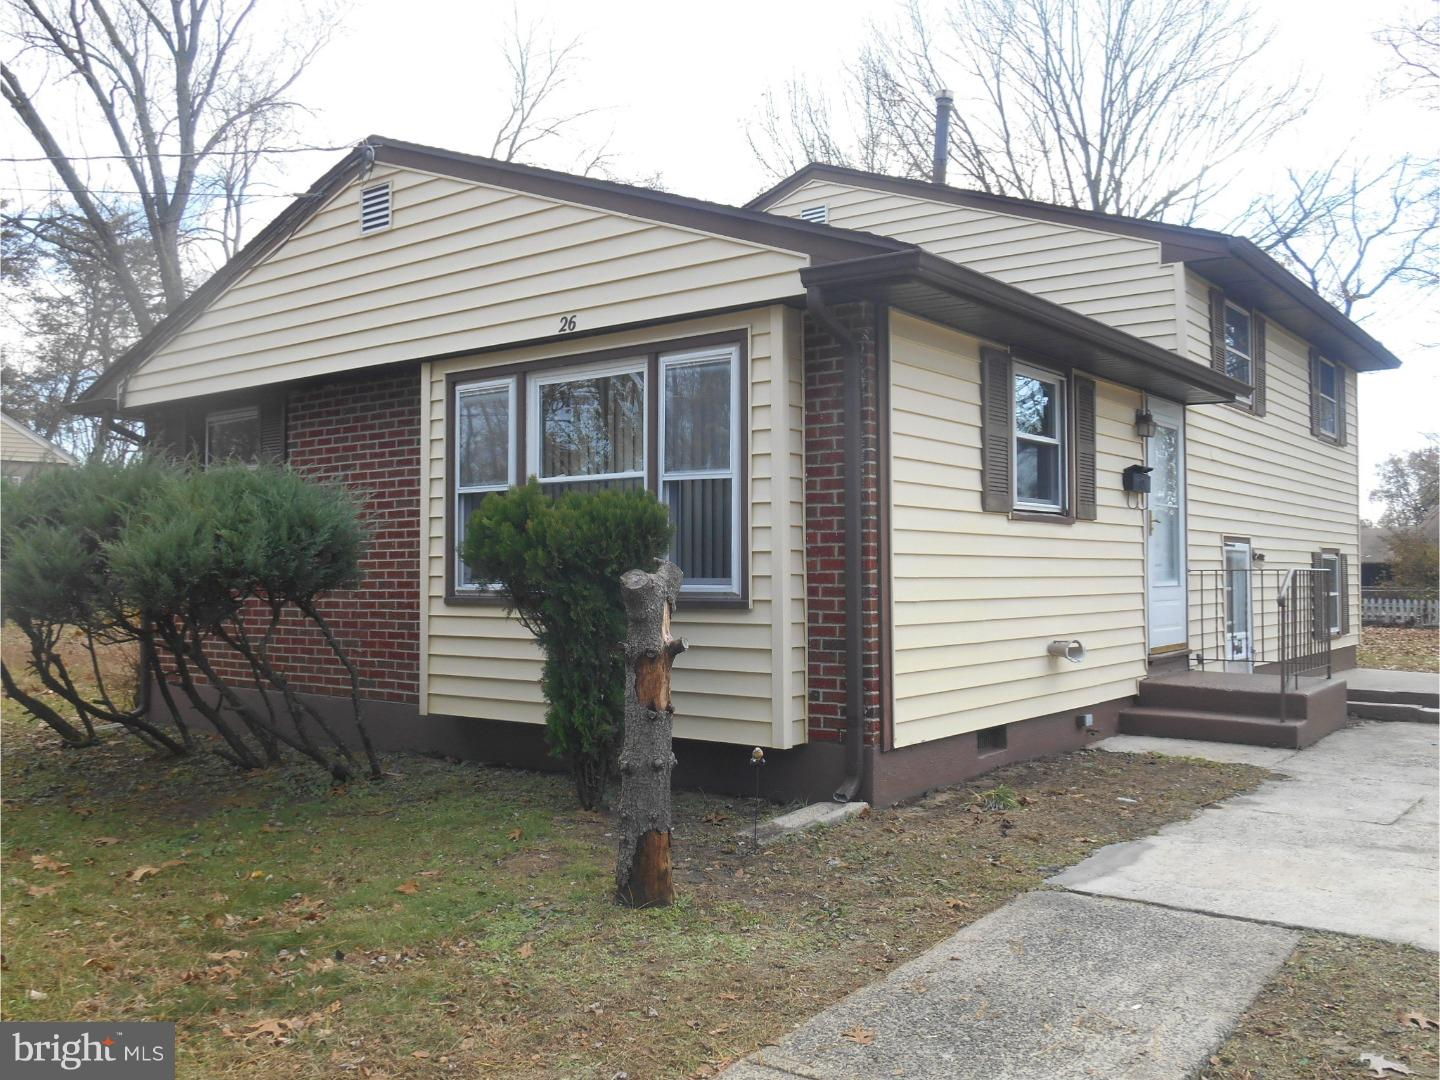 Single Family Home for Sale at 26 E HODGES Avenue Lawnside, New Jersey 08045 United States